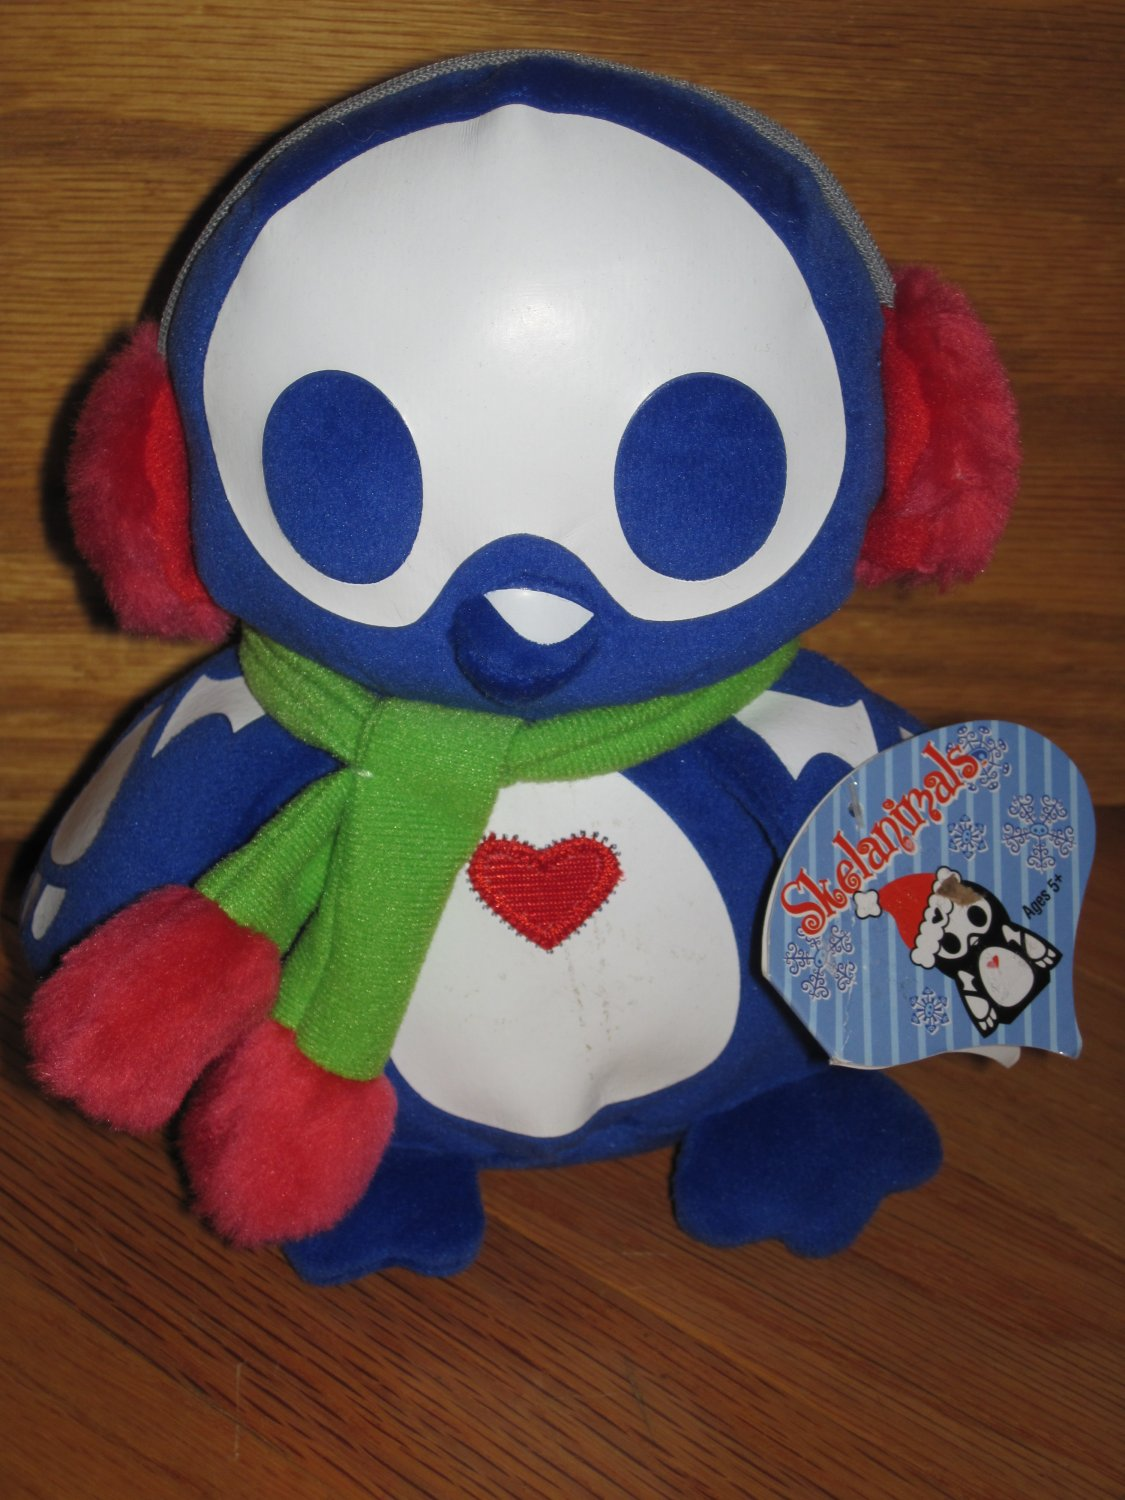 Skelanimals Pen Penguin Plush Blue Earmuffs & Scarf Heart Chest Winter Christmas